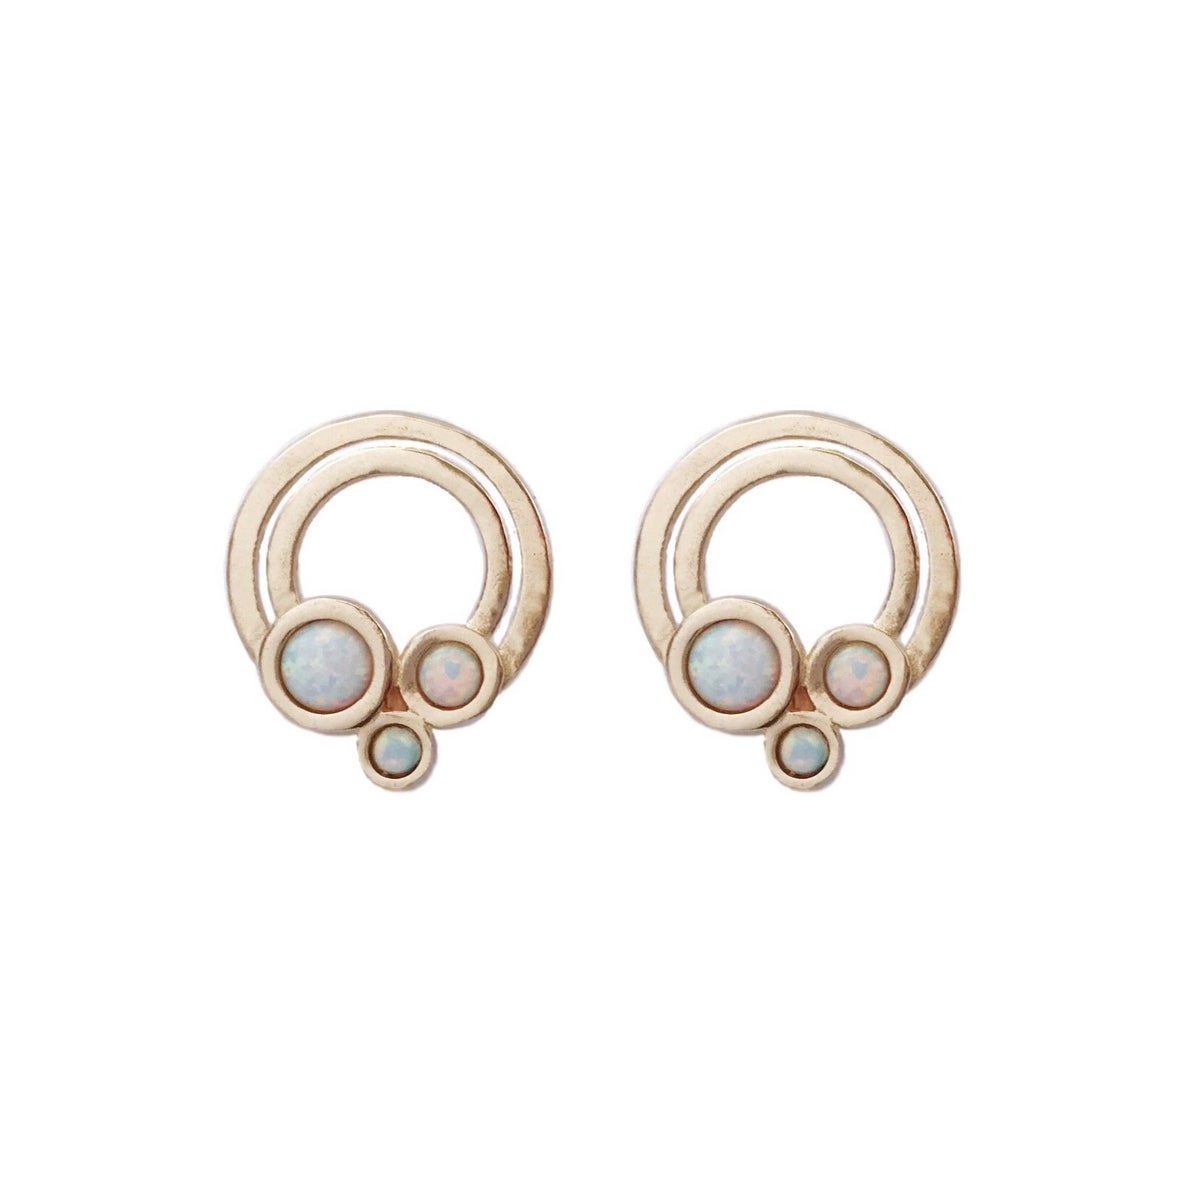 Image of Small Rainbow Earrings with Opal